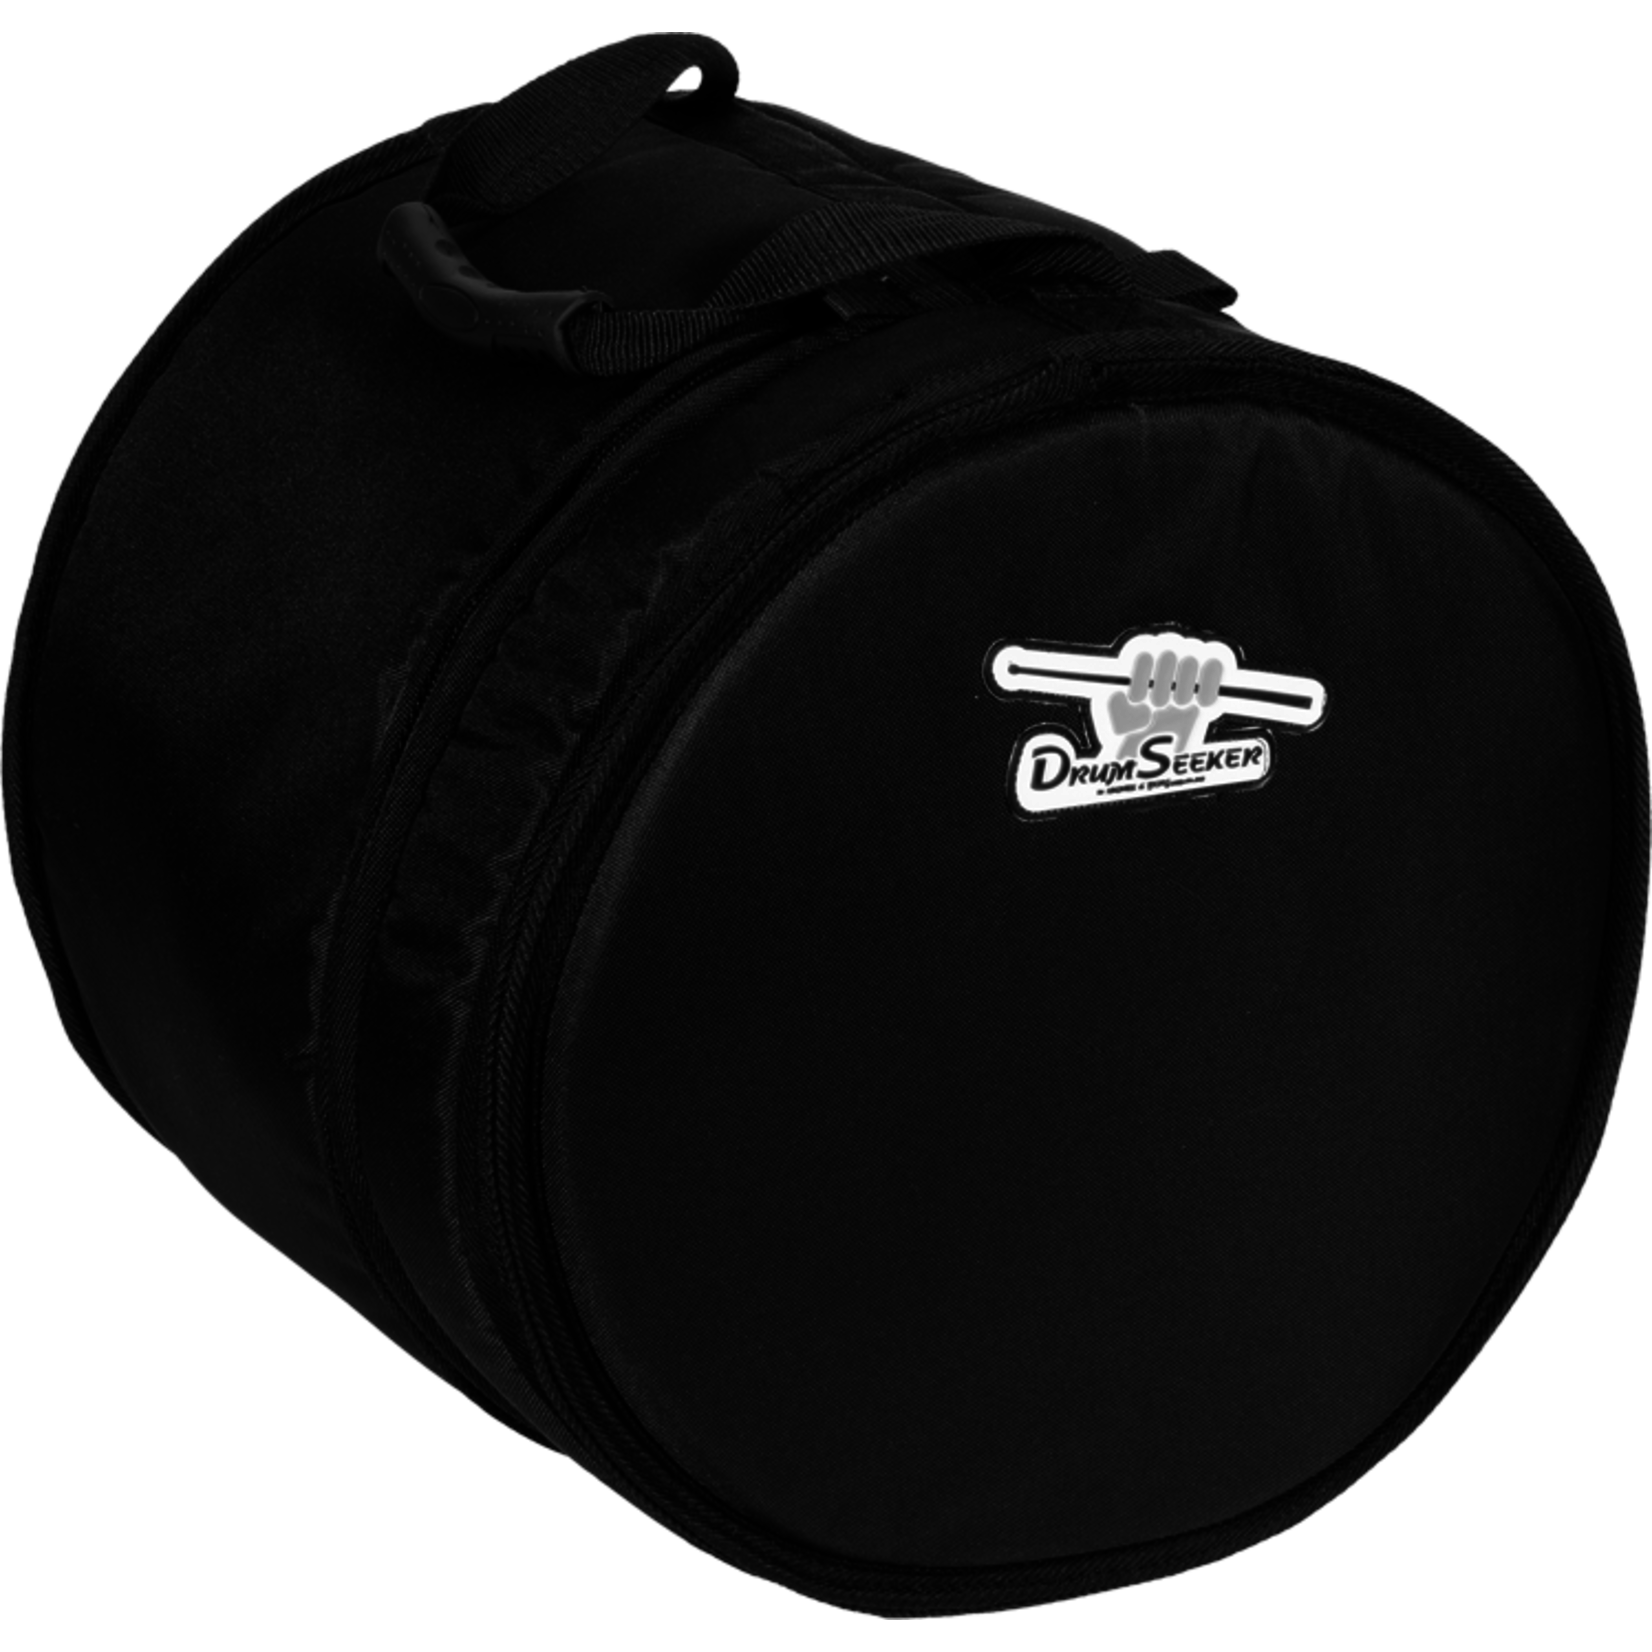 Humes and Berg Humes and Berg Drum Seeker 9x12 Bag